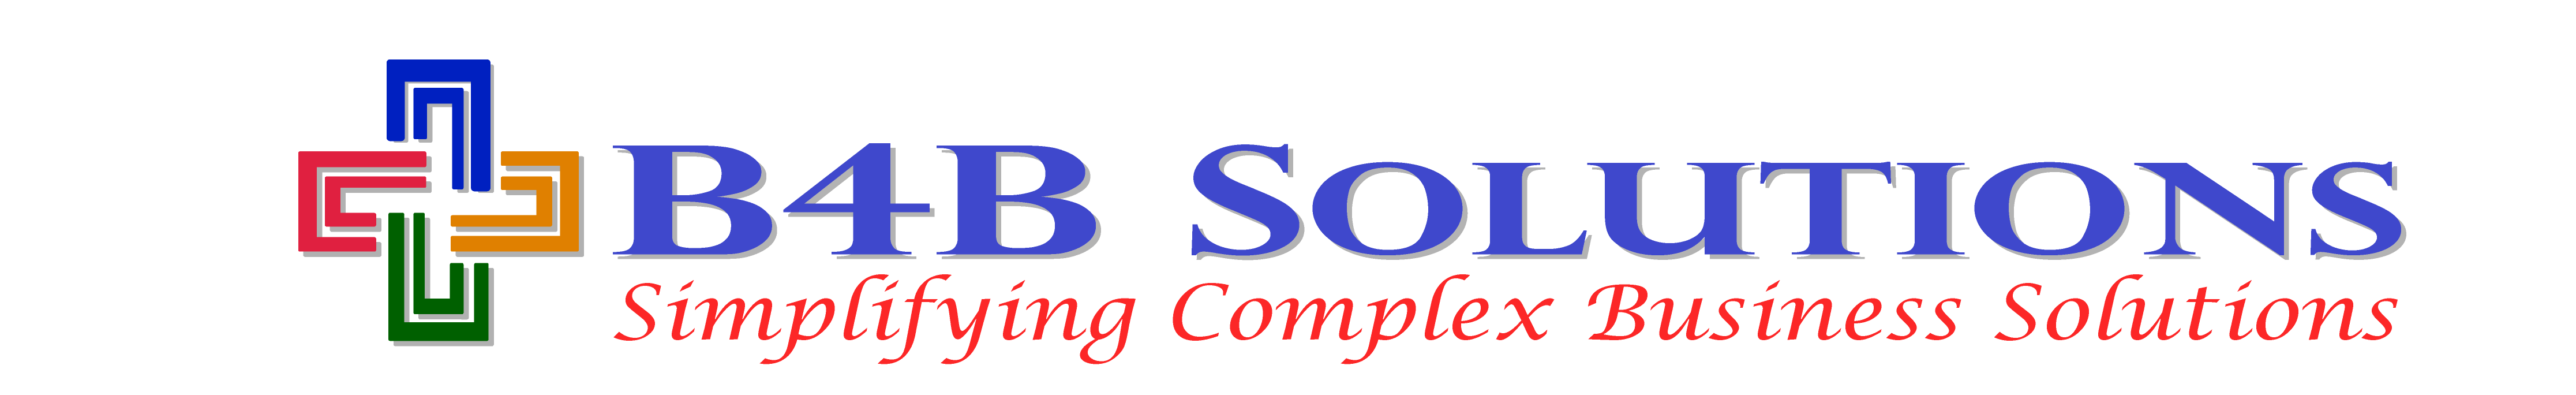 B4B SOLUTIONS - Data Management company logo